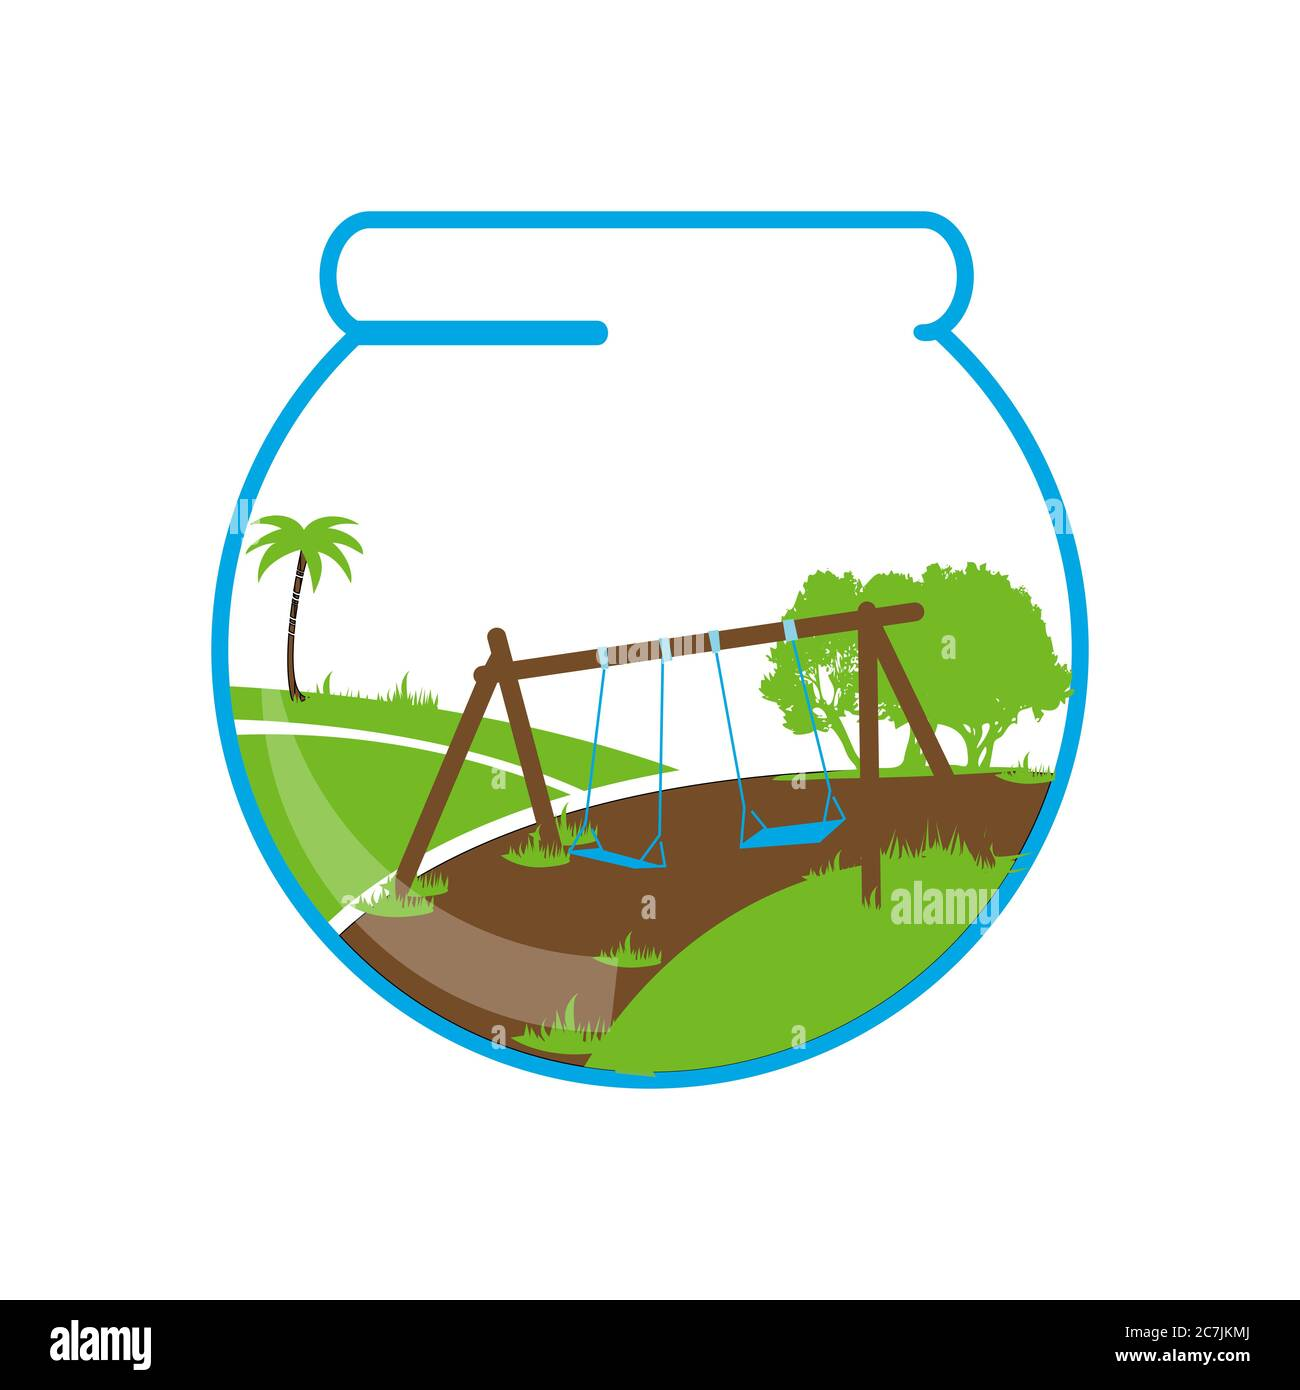 Aquascapes Aquarium Logo Design With Graphic Of Garden With Trees And Swings Stock Vector Image Art Alamy